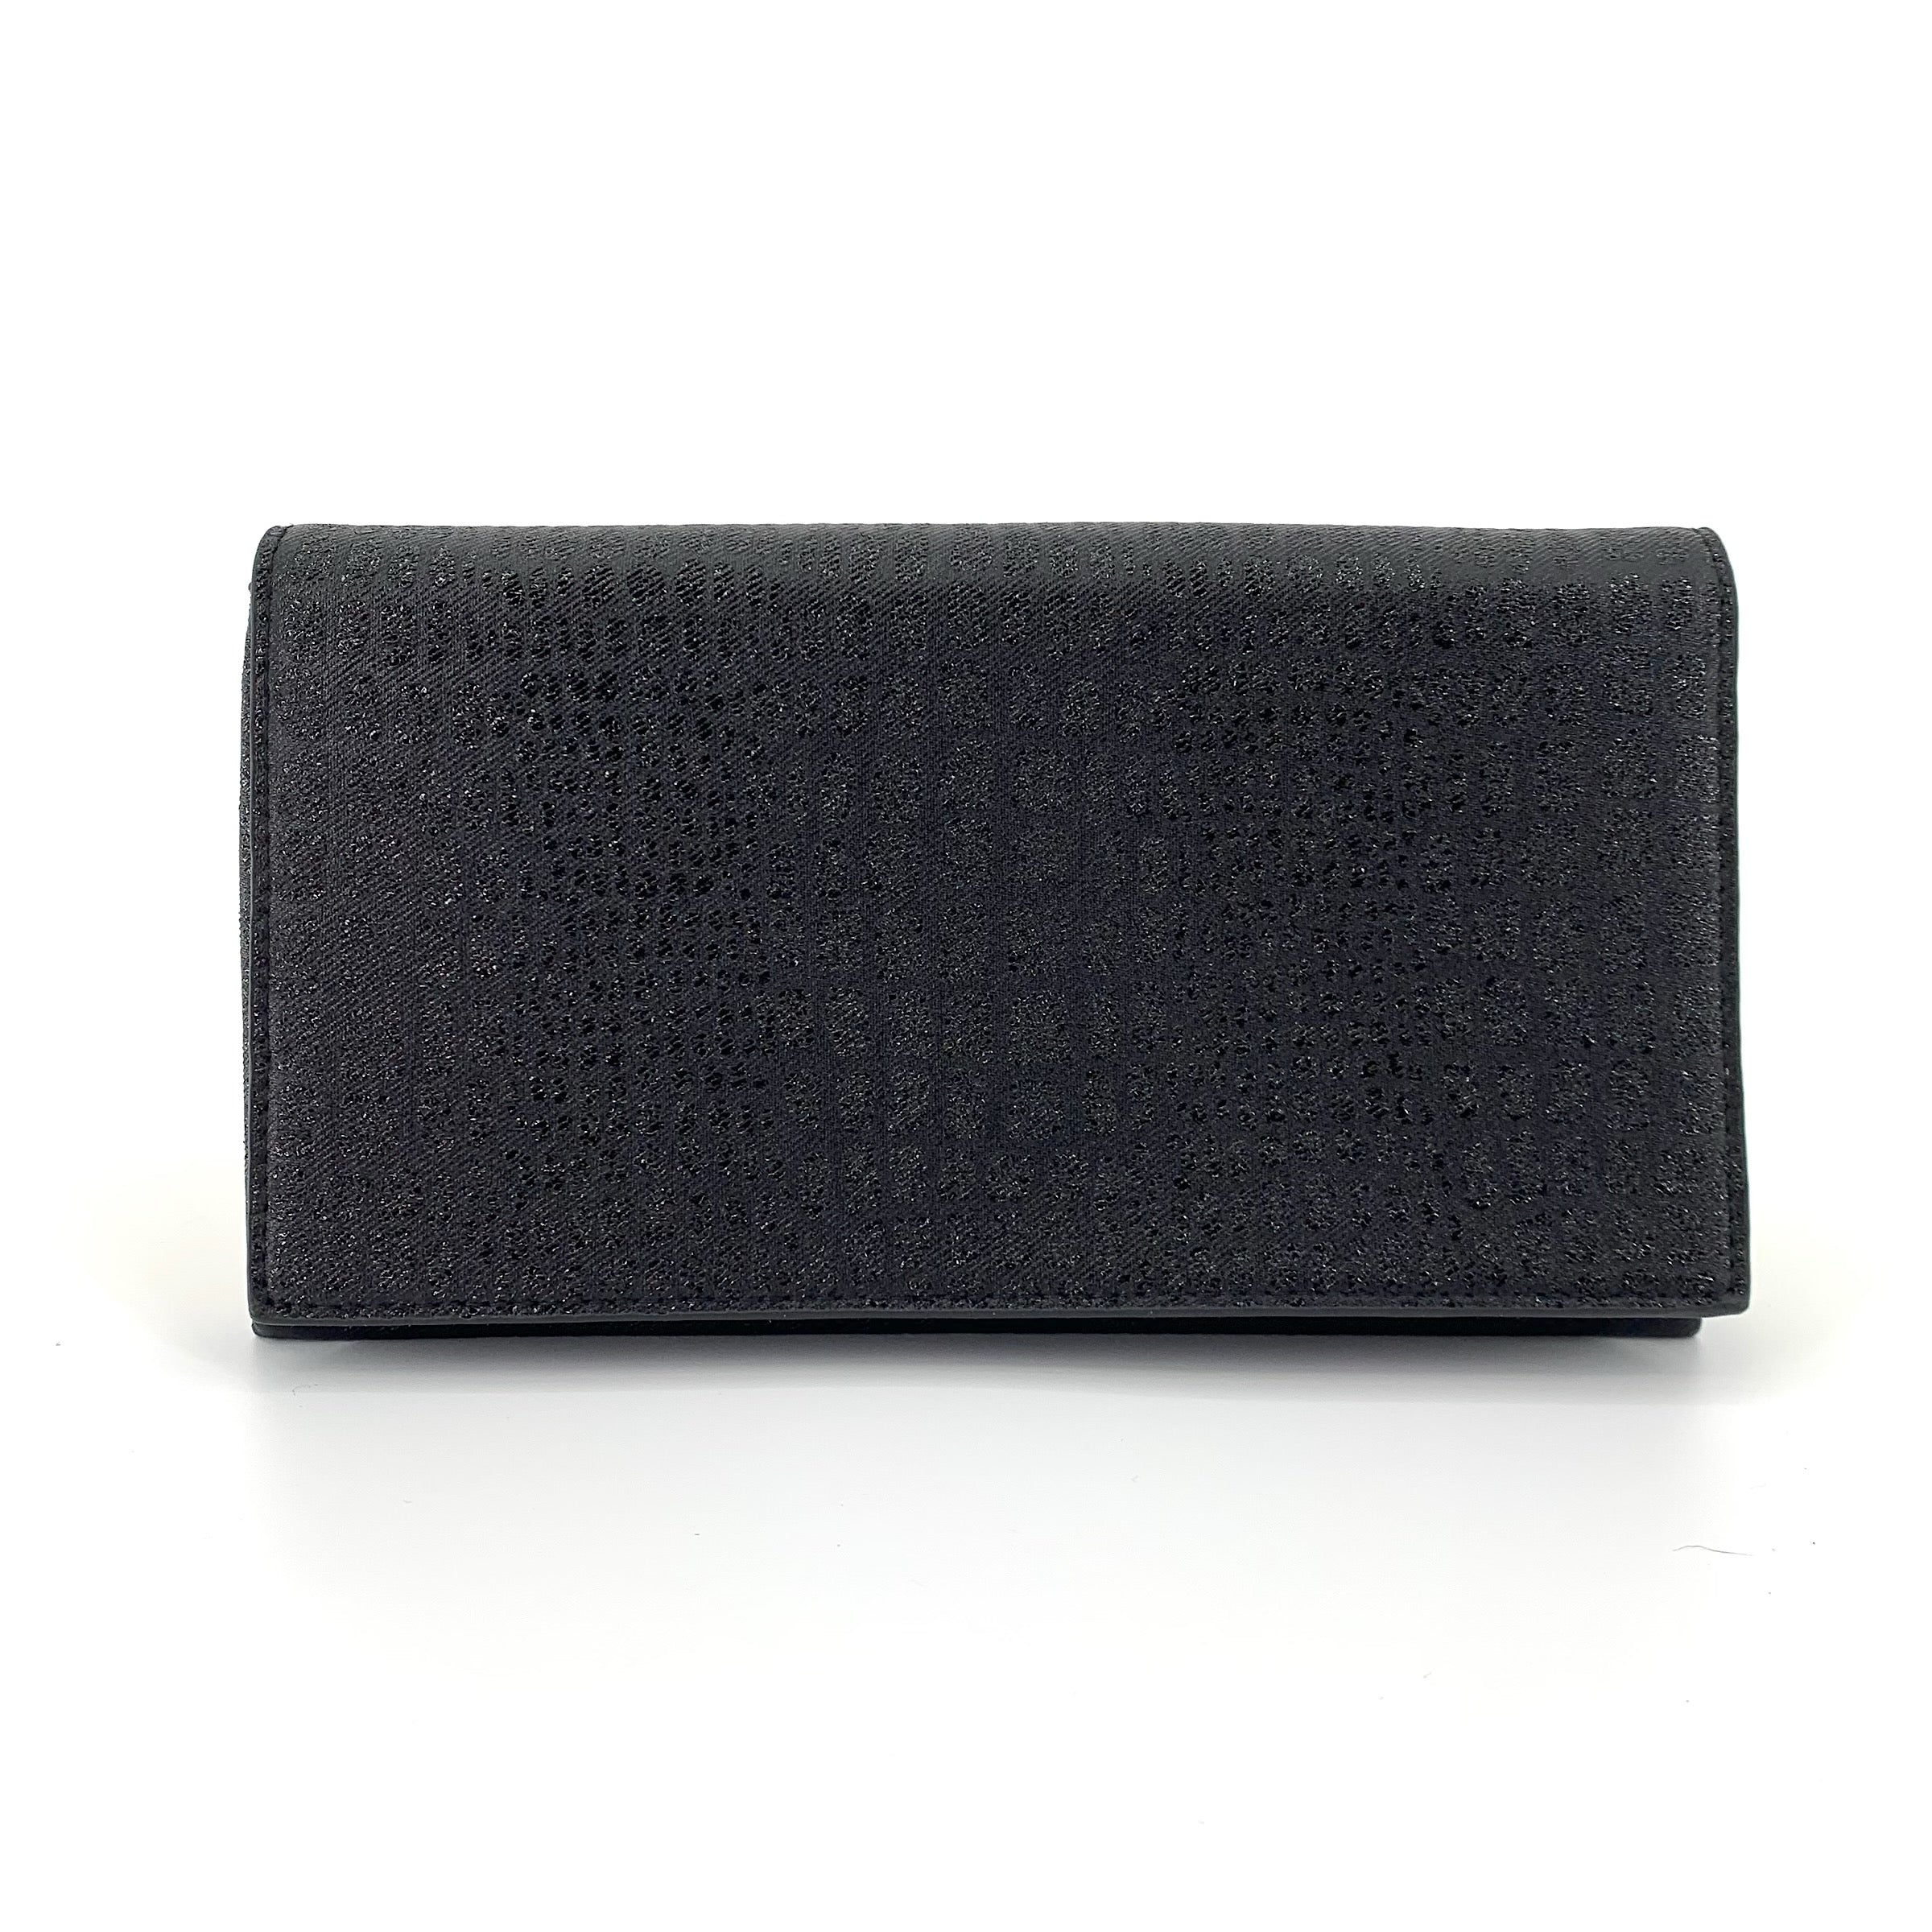 SRBE3486 - Metallic Embossed Croco Clutch in Black by Sondra Roberts. Sylishly classic update evening clutch in metallic embossed croco print. Flap over style with chain for shoulder. Interior has three compartments including zipper pocket. Imported